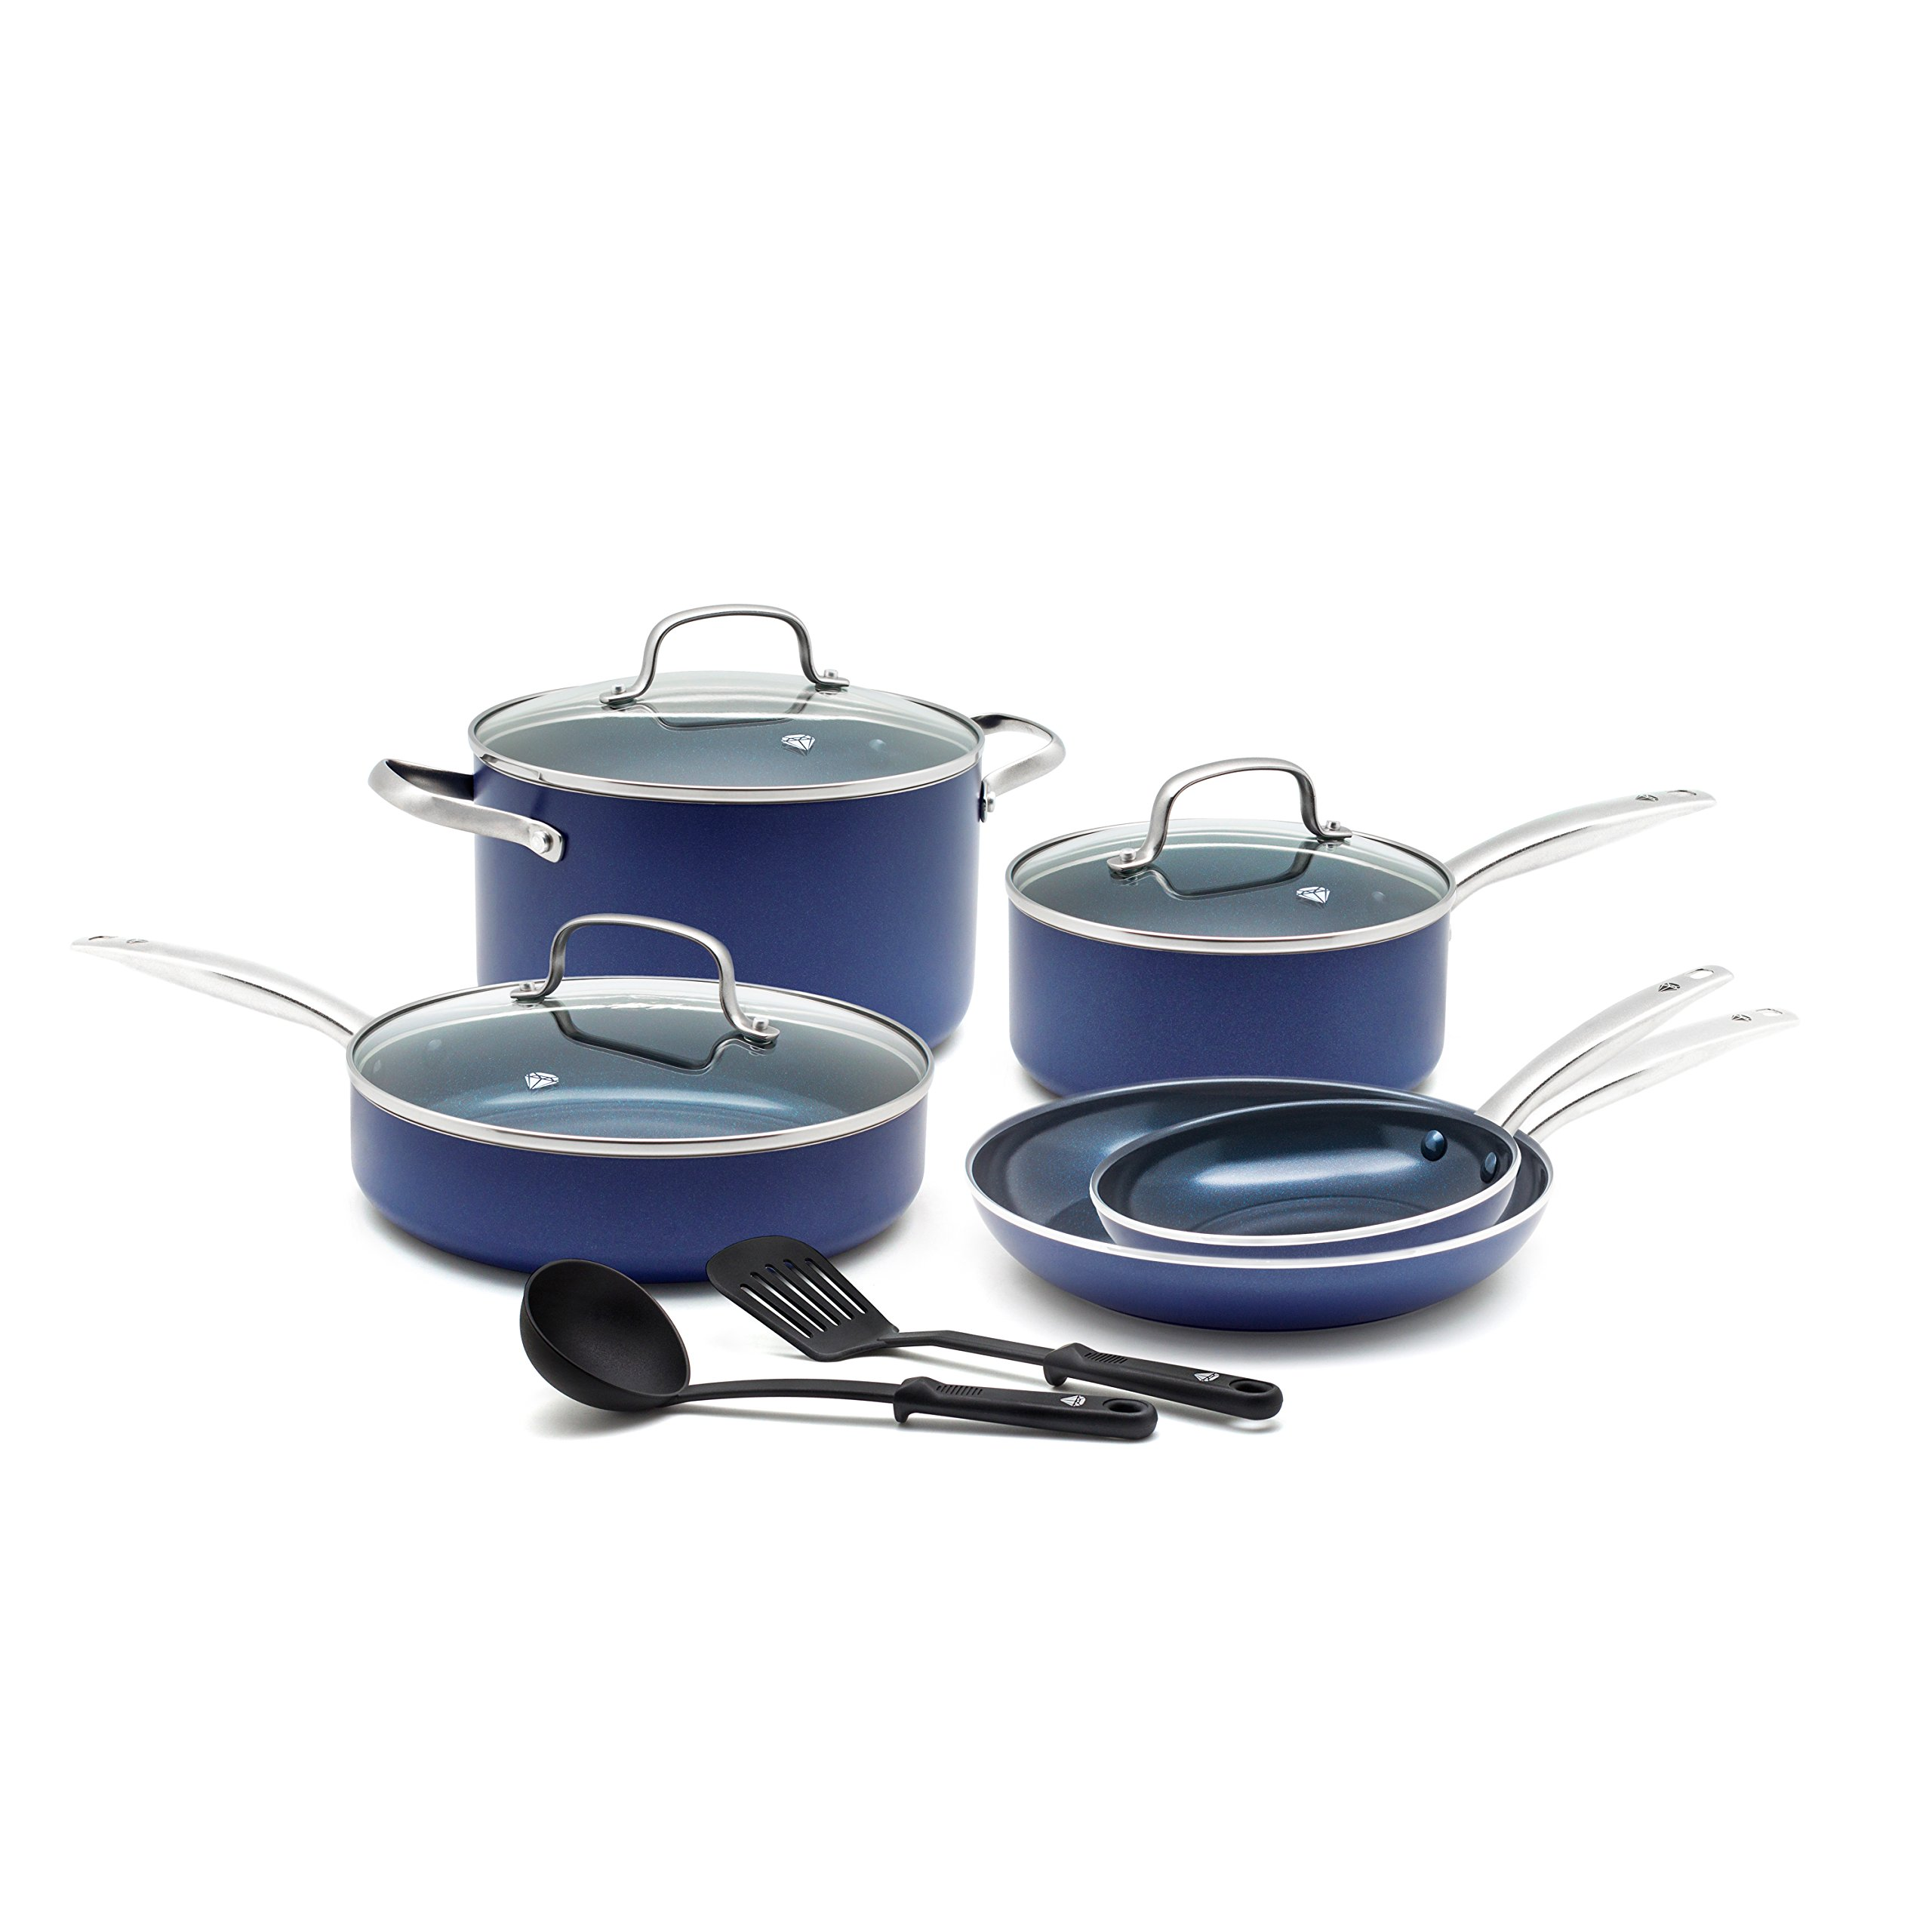 Blue Diamond CC001602-001 Toxin Free Ceramic Nonstick Cookware Set, 10-Piece